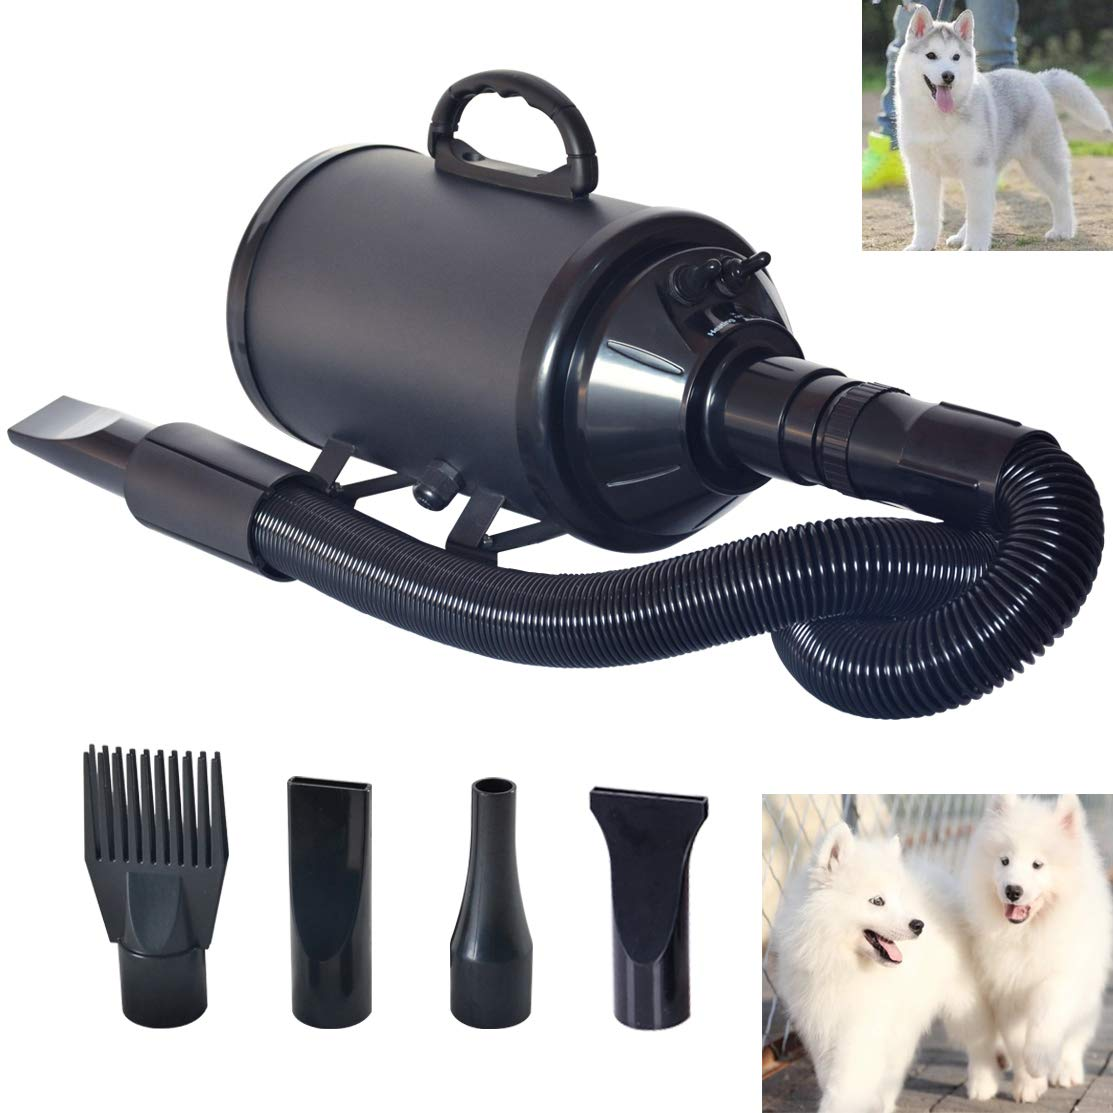 C&W Pet Dog Cat Hair Dryer Blower,Pet Grooming Dryer with Heater,Speed Adjustable Dog Hair Dryer,Pet Dryer for Large Small Dogs Cats Animal,Variable Speed (Black)